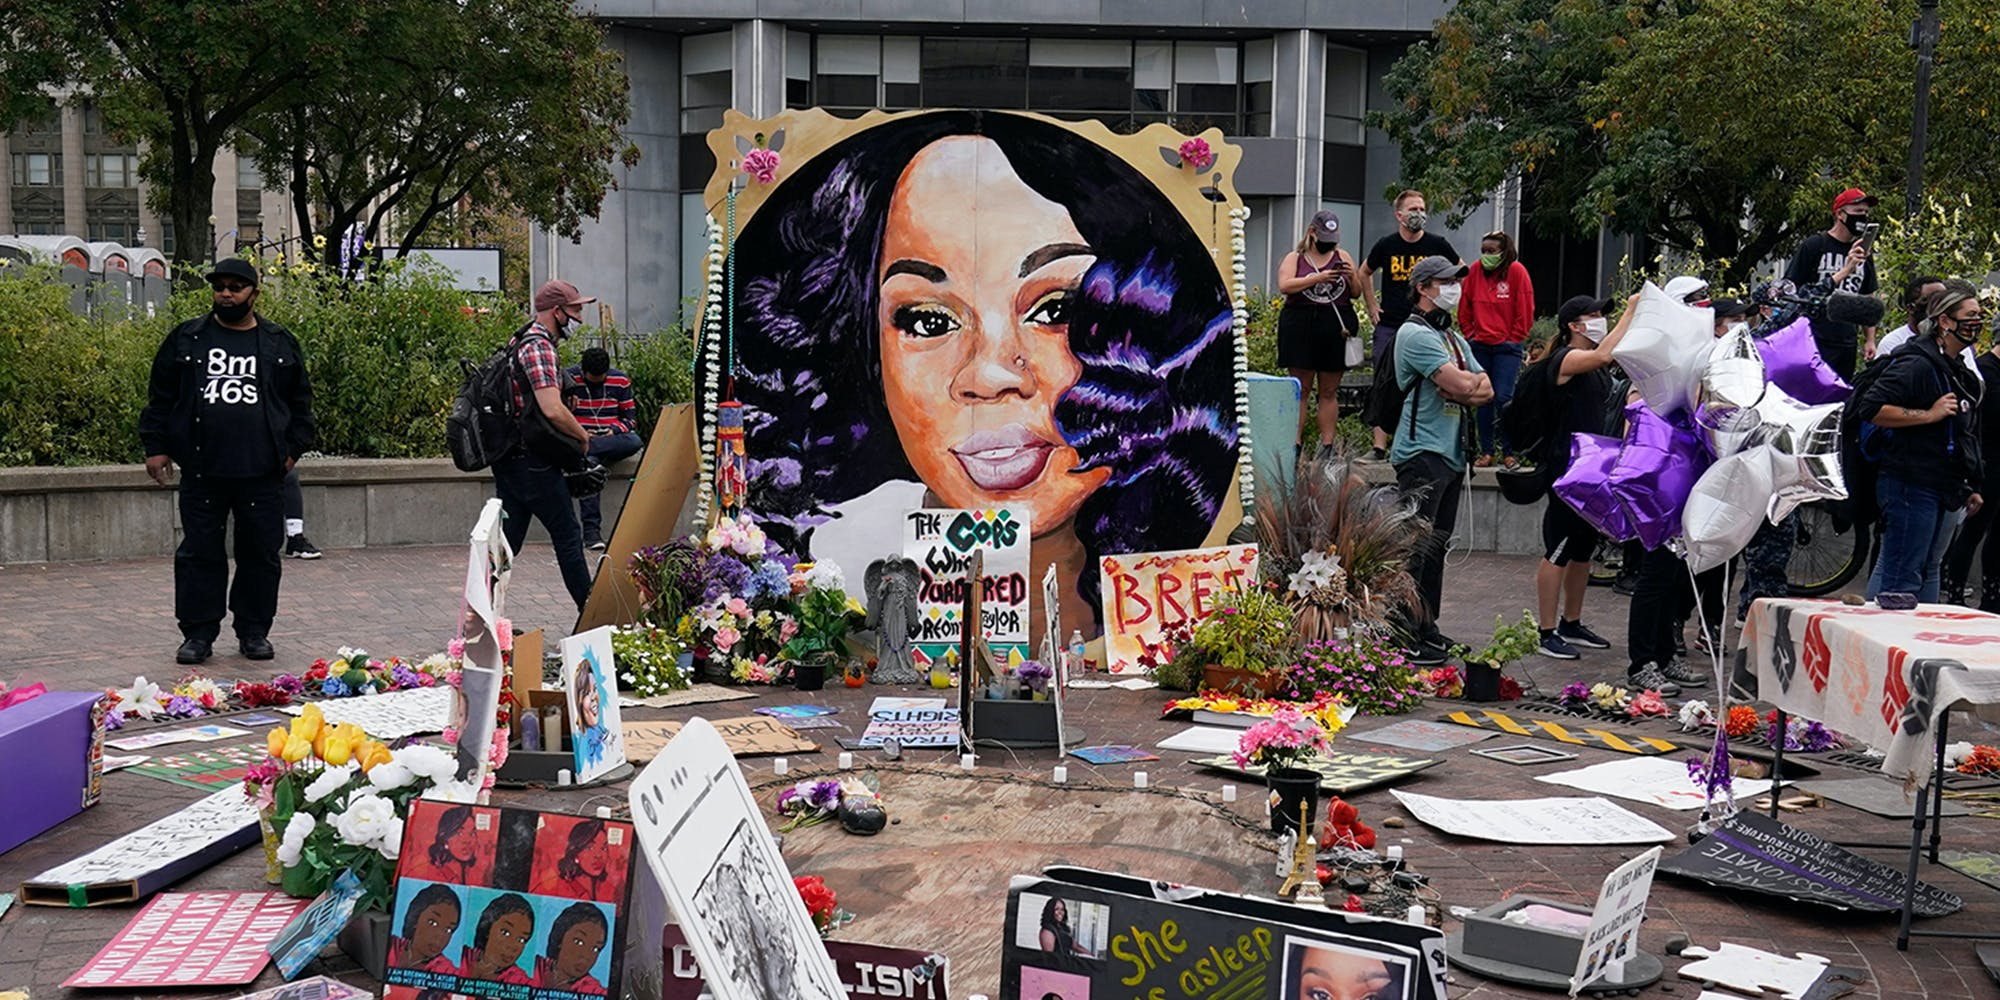 People gather in Jefferson Square around Breonna Taylor memorial